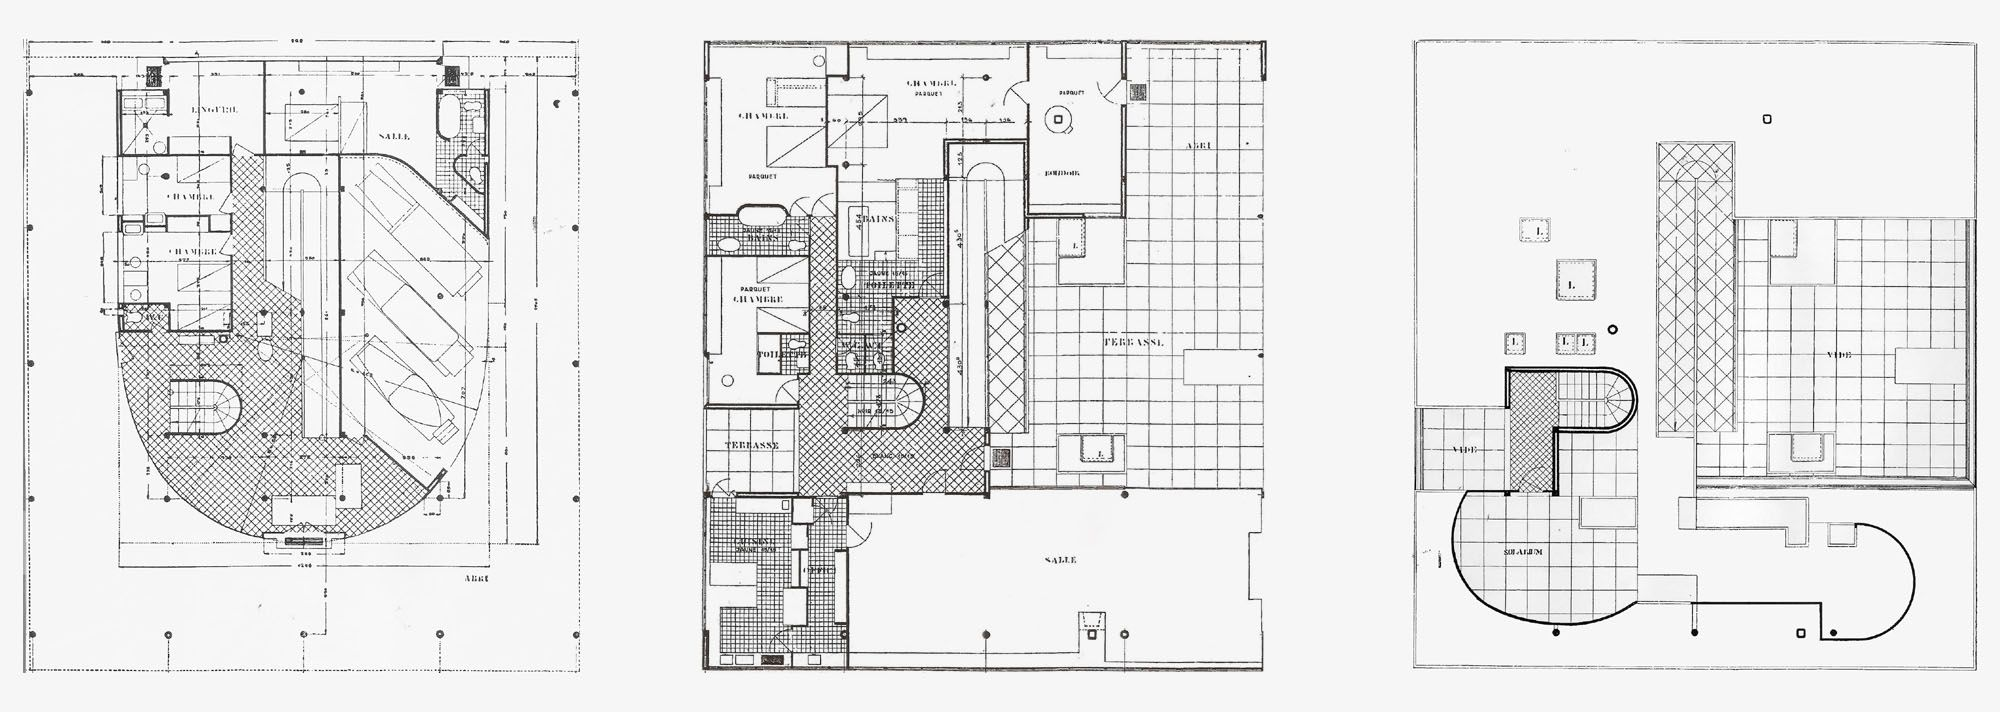 Villa Savoye Corbusier Poissy Floorplans Floor Plans